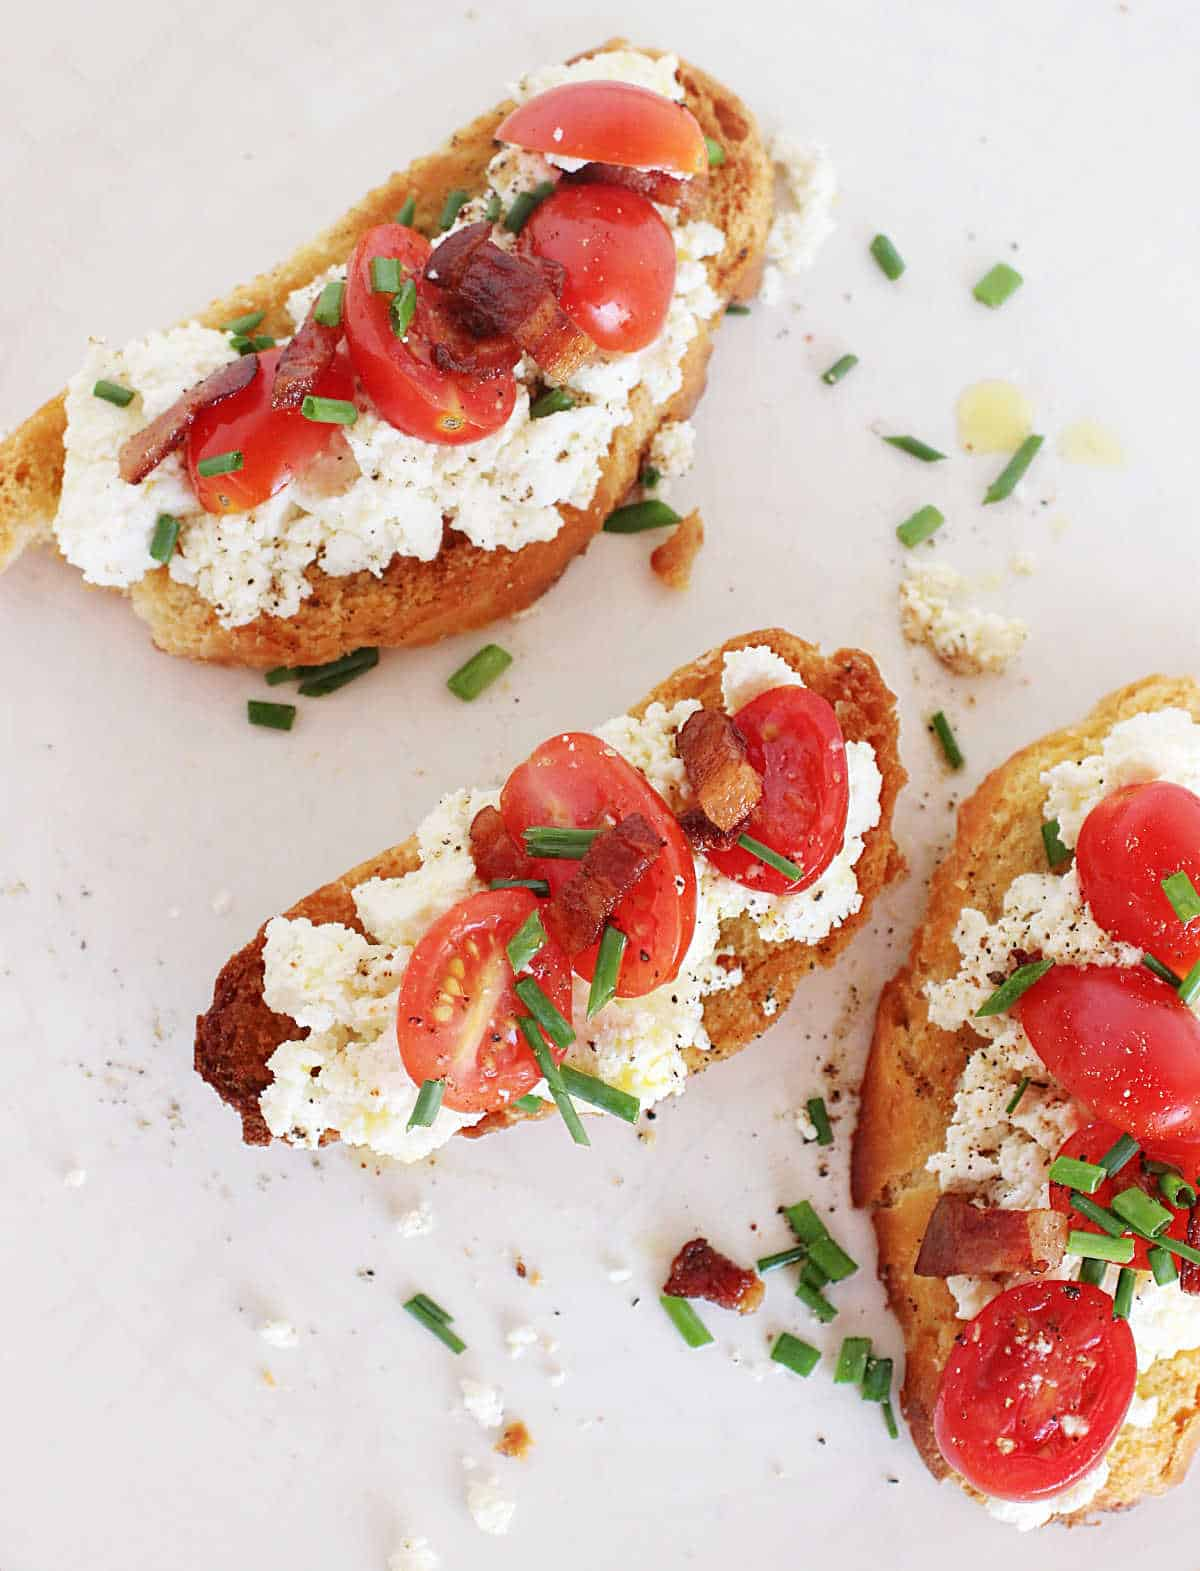 Top view of three ricotta tomato toasts on white plate